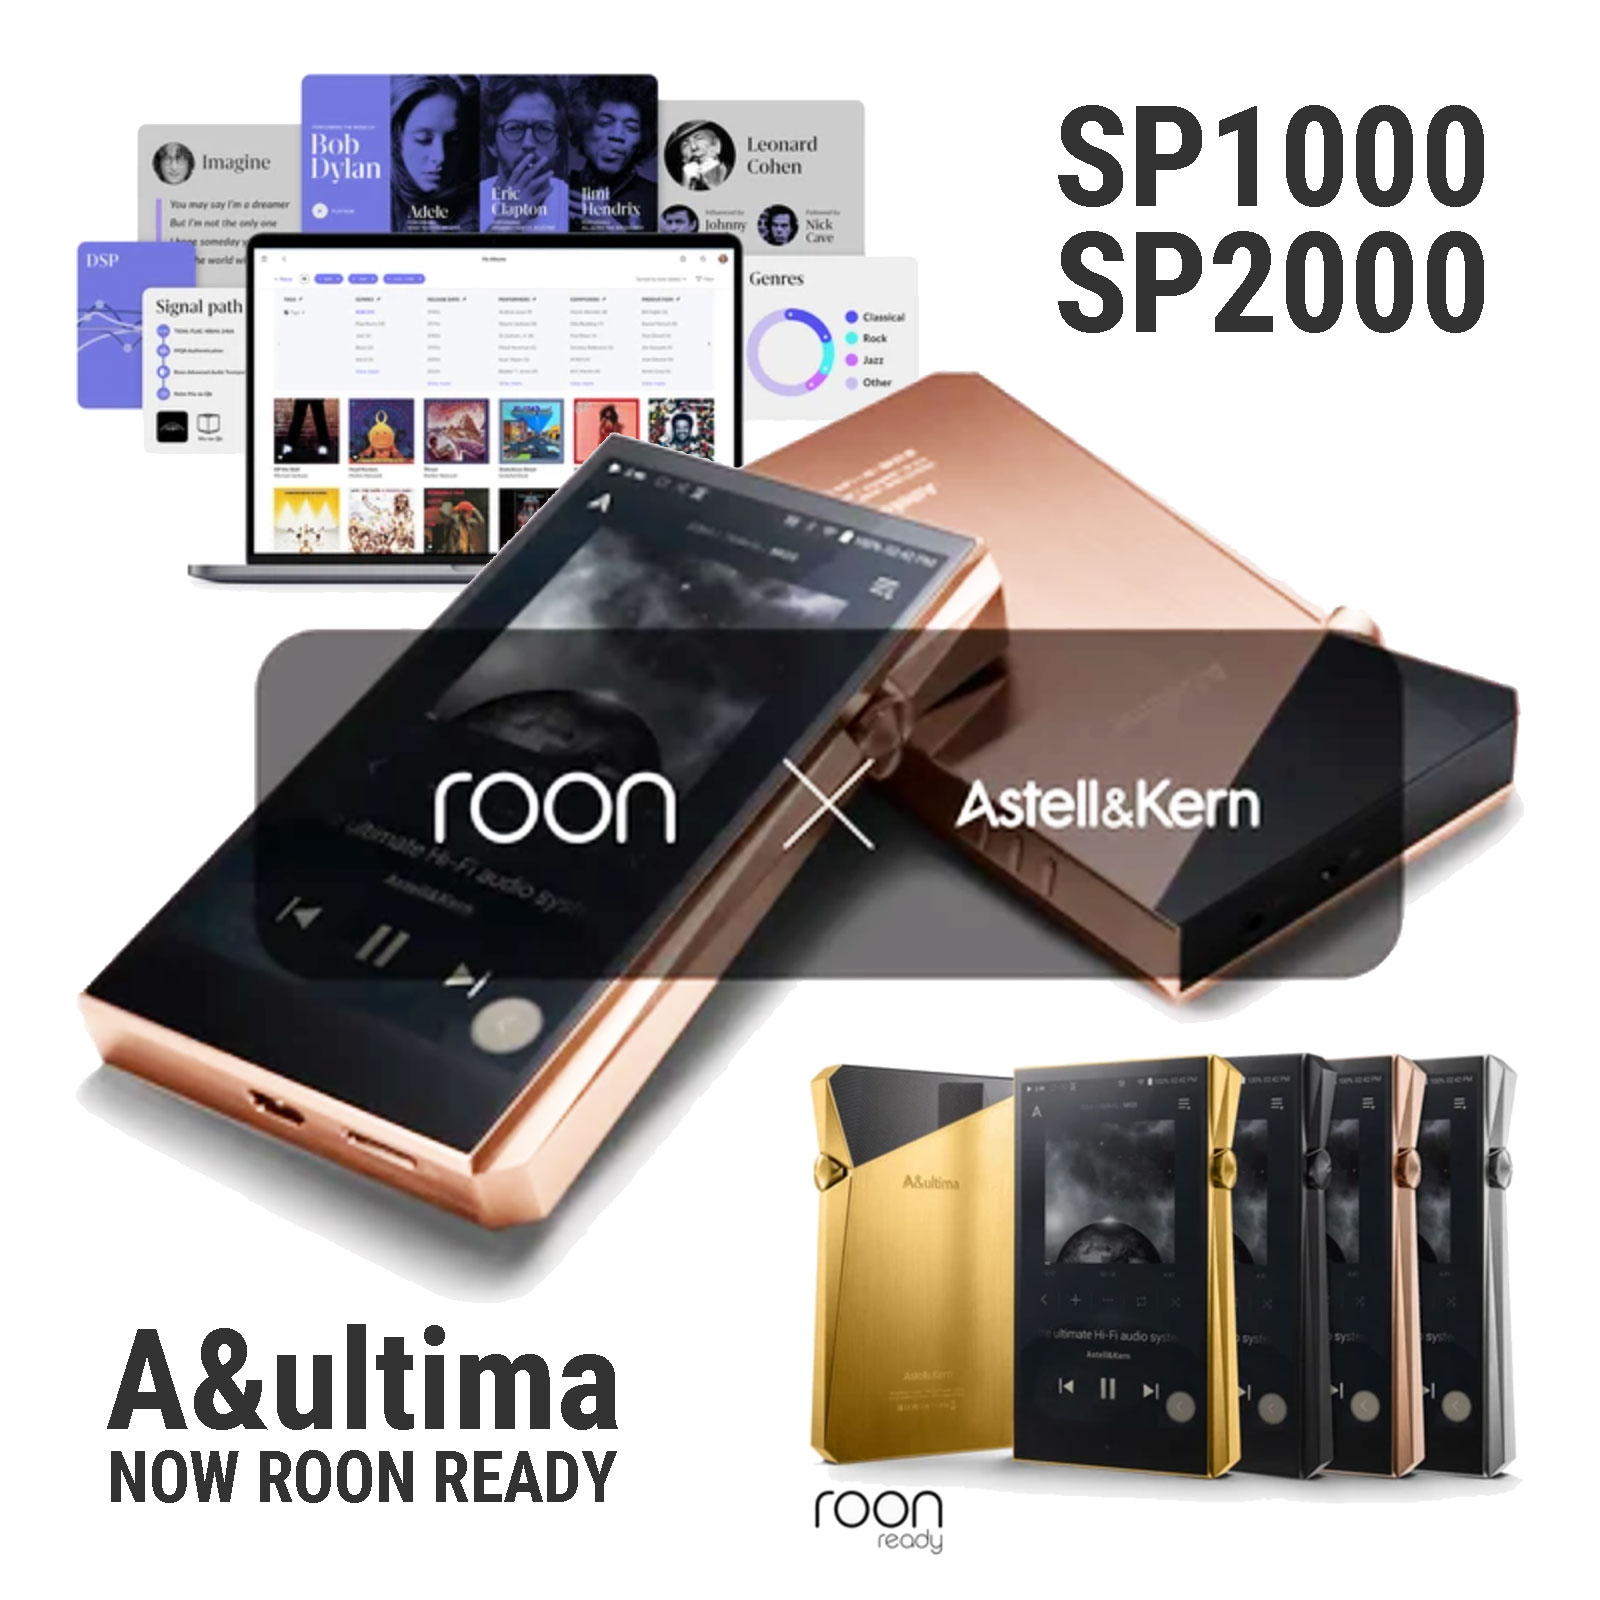 Astell&Kern A&ultima Players Now Roon-Ready | Audio Sanctuary